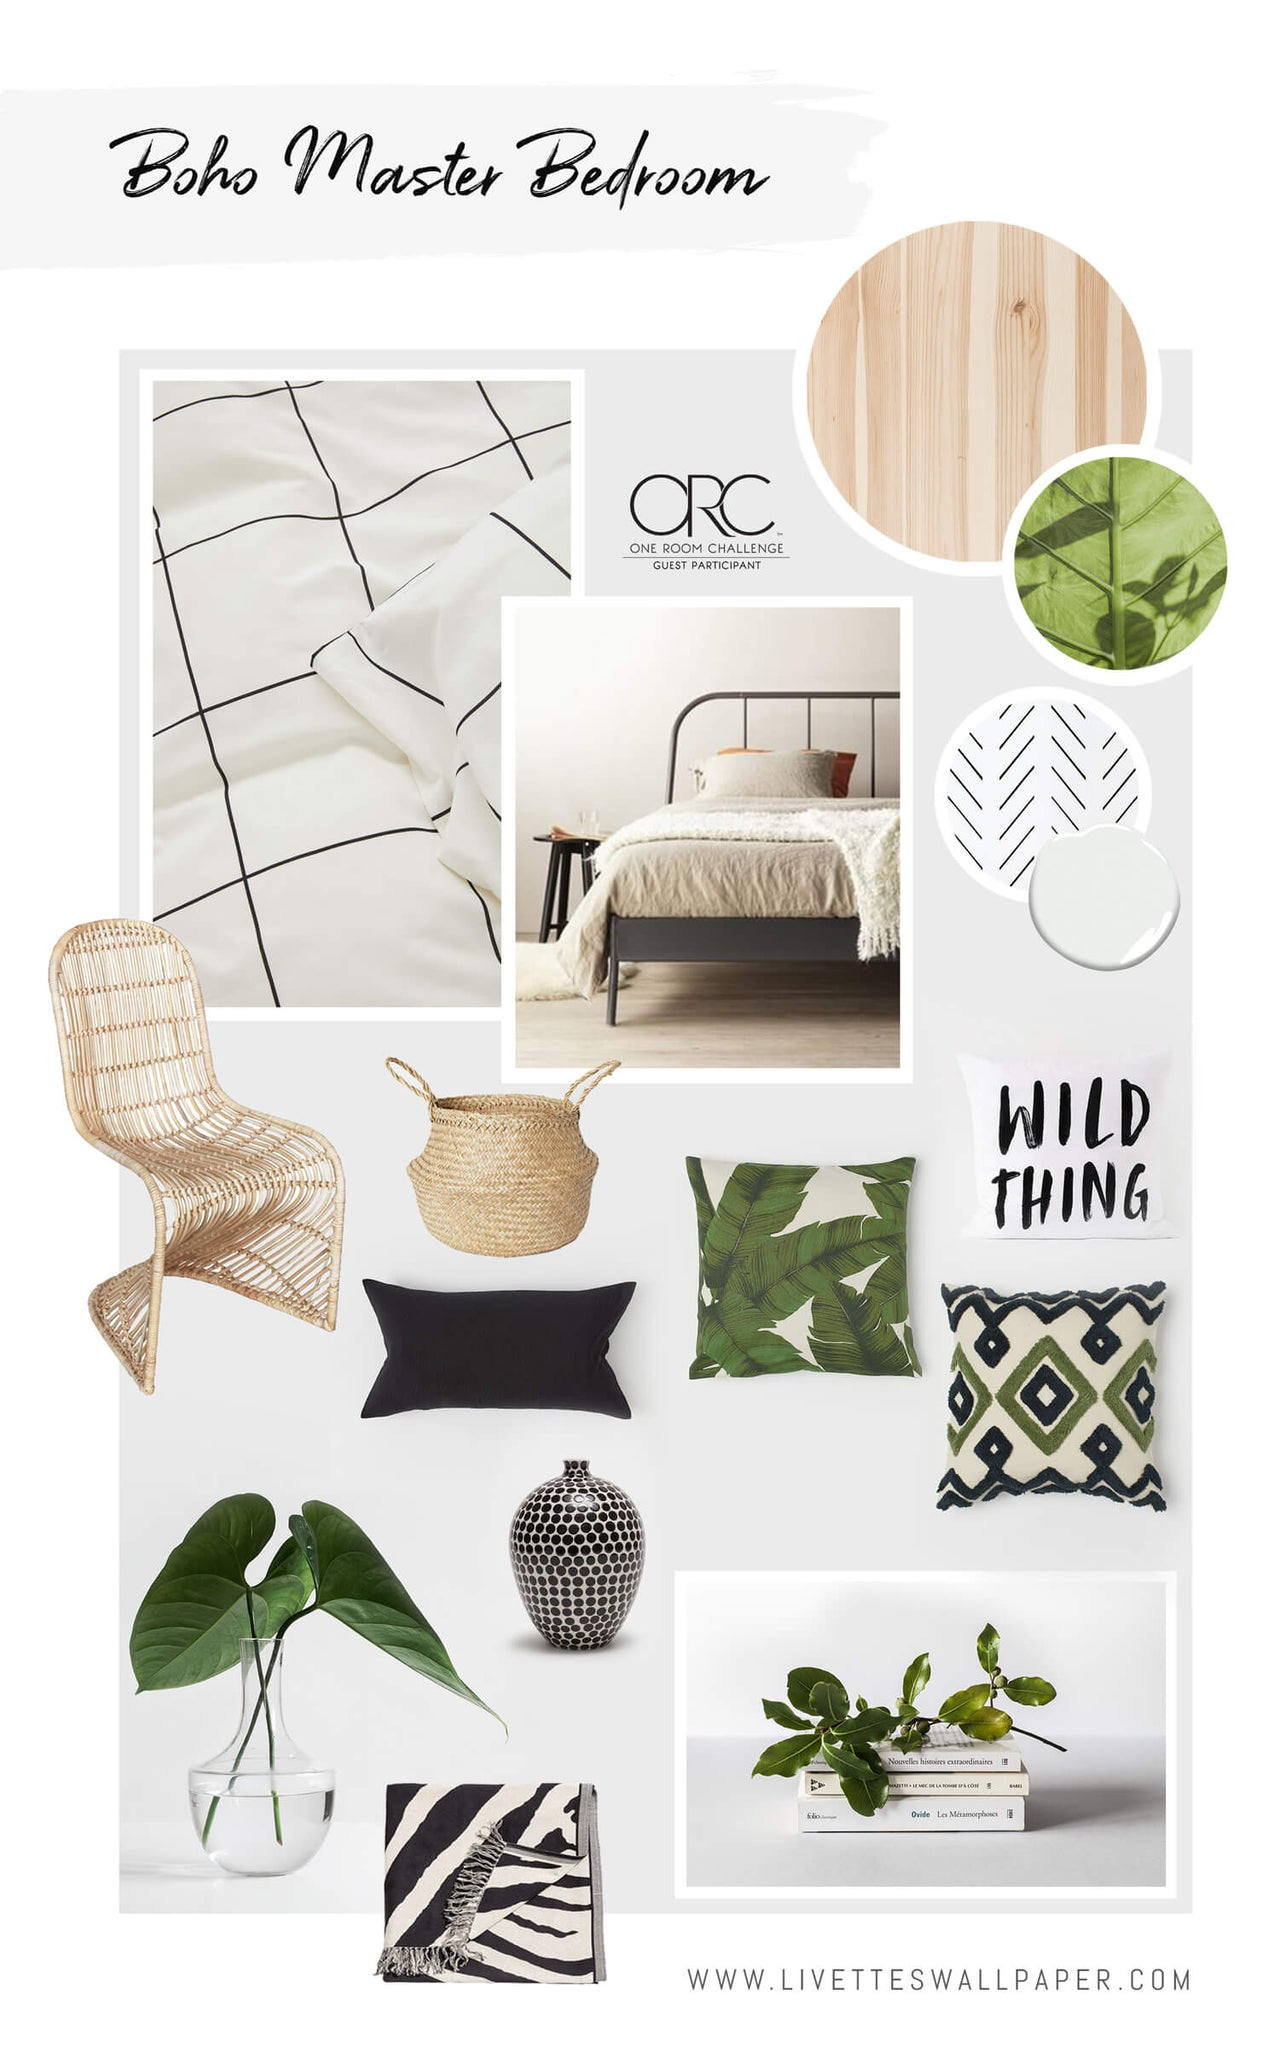 One room challenge 2019, spring series. Guest participant master bedroom remodel in modern bohemian interior style.